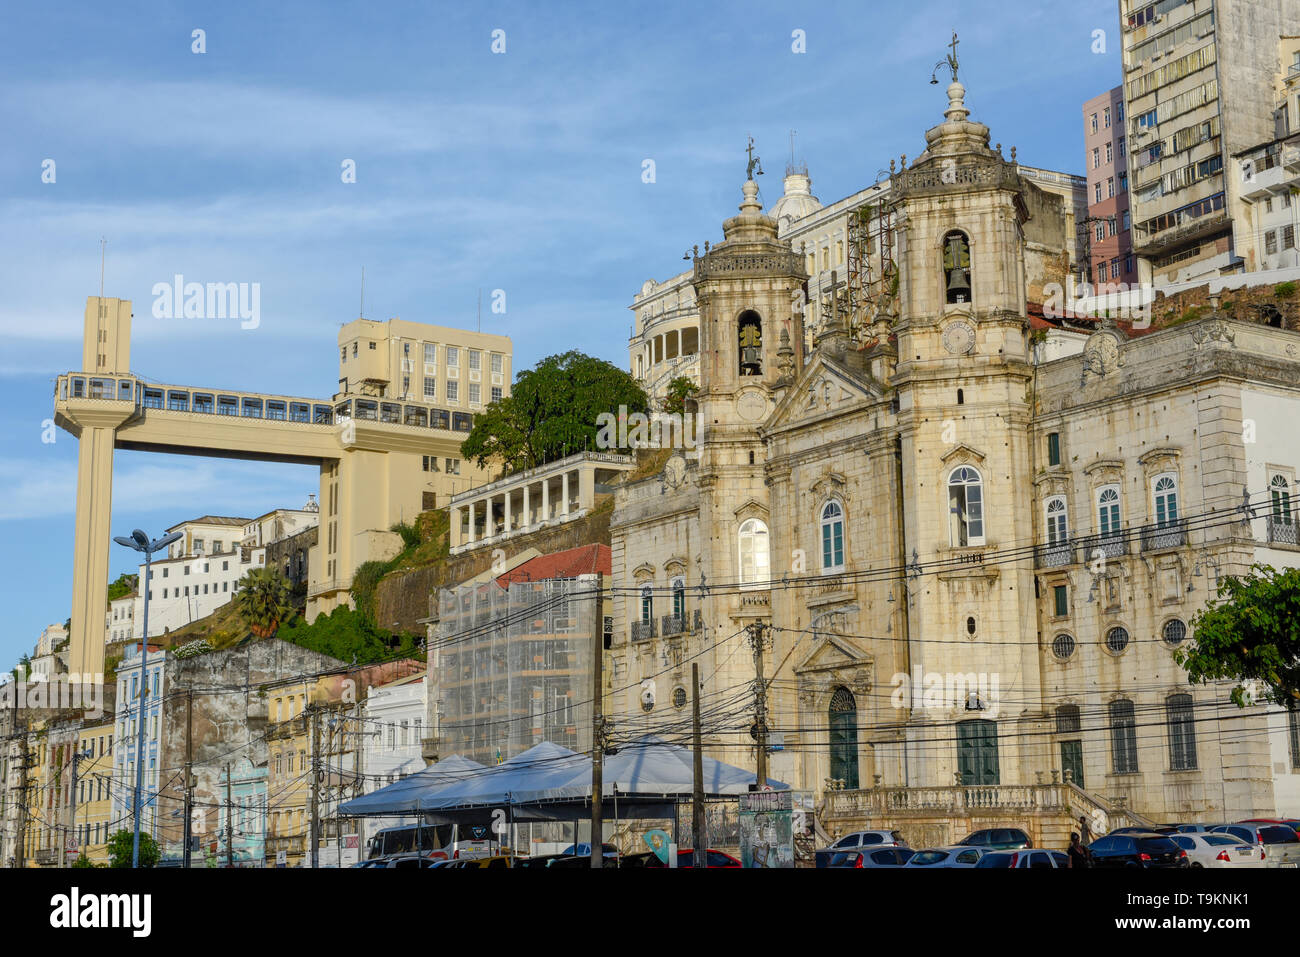 Salvador, Brazil - 3 february 2019: View of Lacerda Elevator from lower city in Salvador Bahia on Brazil - Stock Image